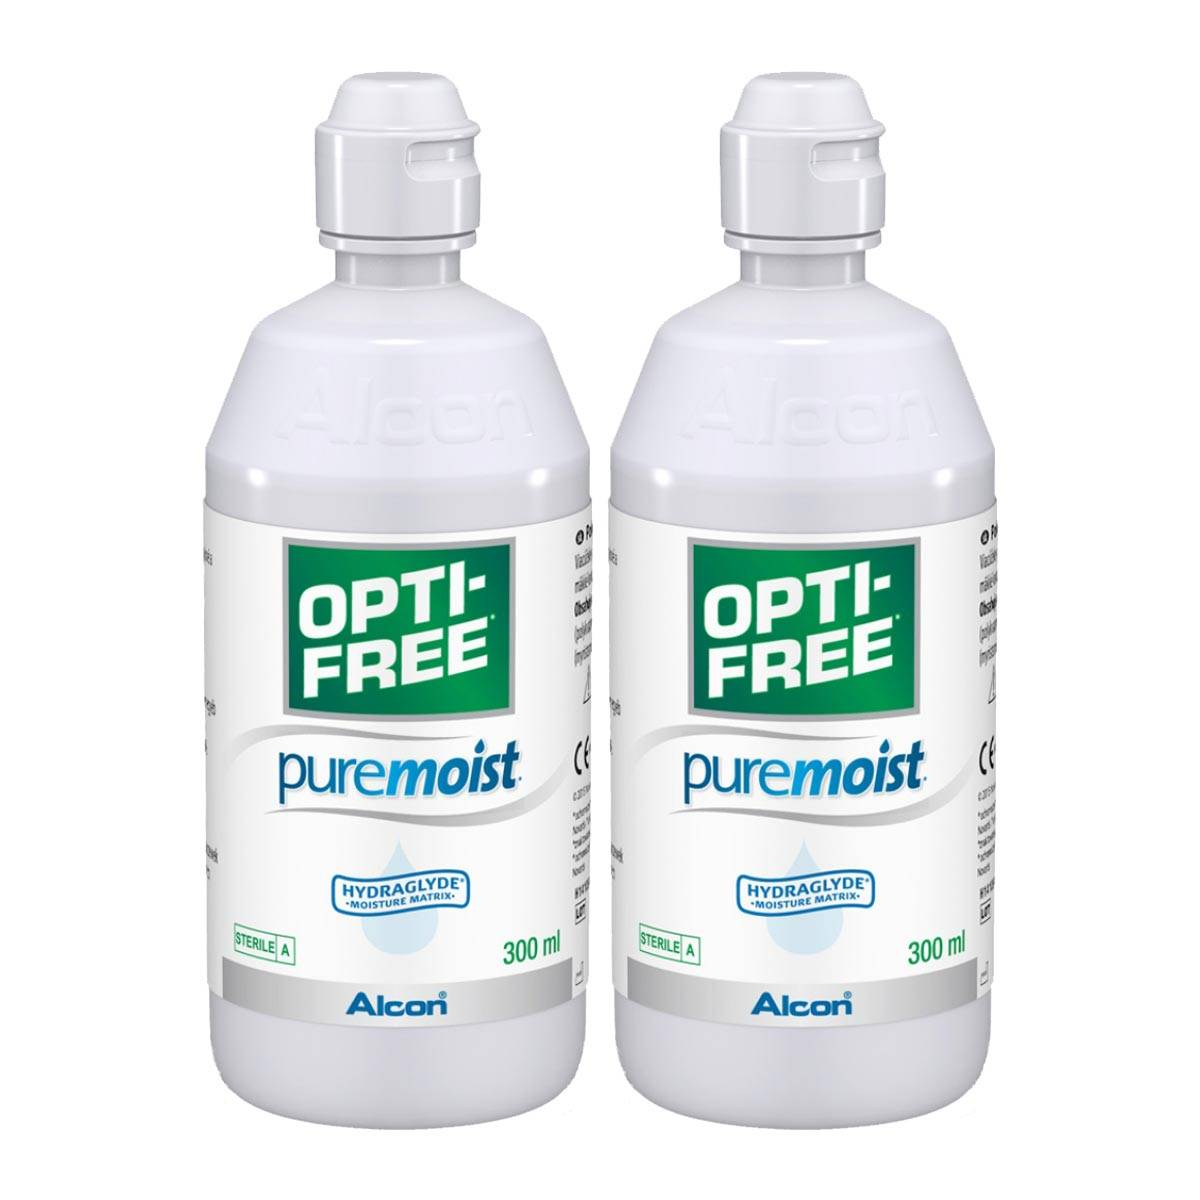 Alcon Opti-Free Puremoist Twin Pack (2*300ml), Alcon, Contact Lens Solution, Includes 2 Lens Cases